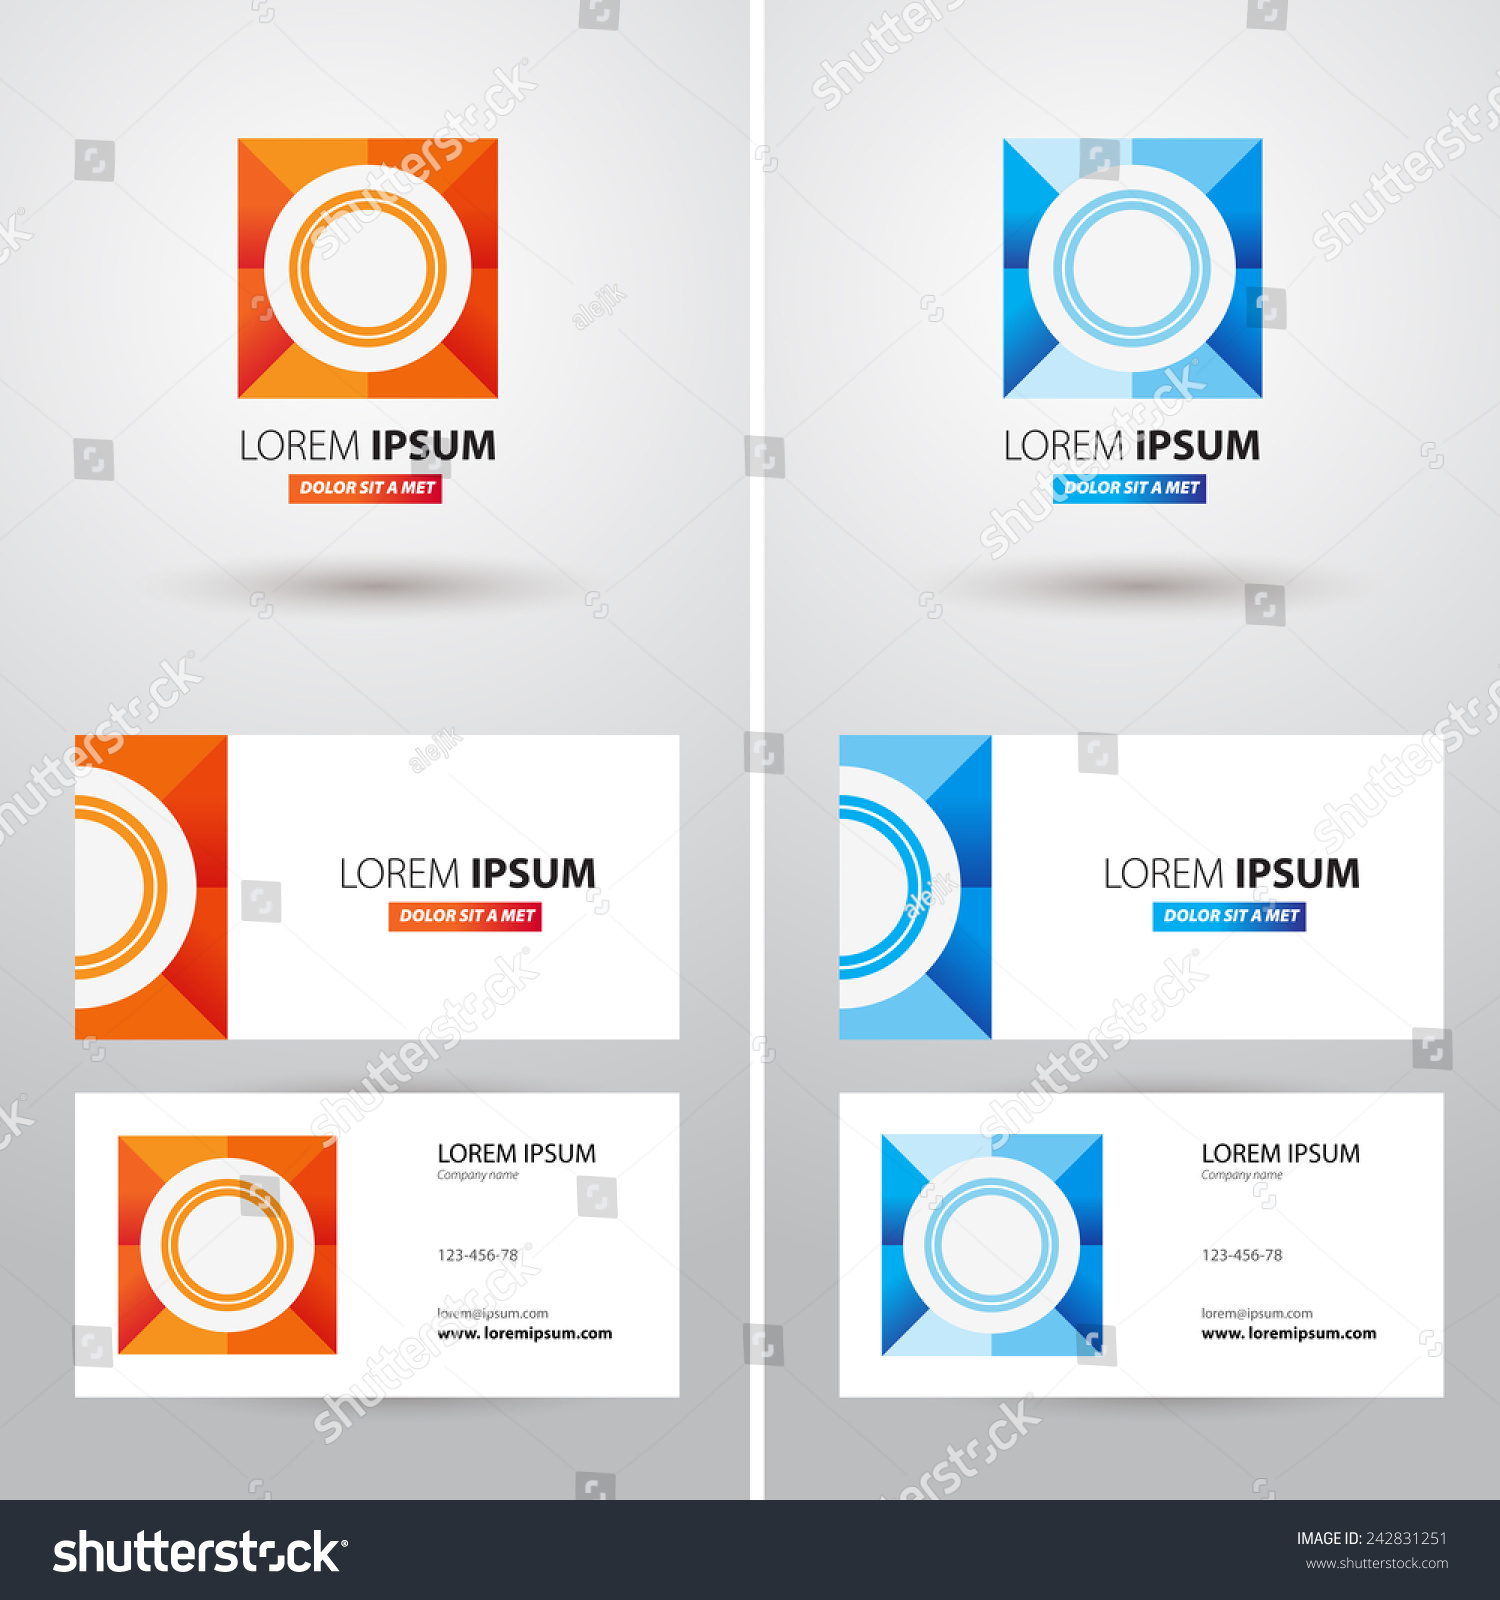 Business card logo text different use stock vector 242831251 business card with logo and text with different use cases two color side vector magicingreecefo Image collections